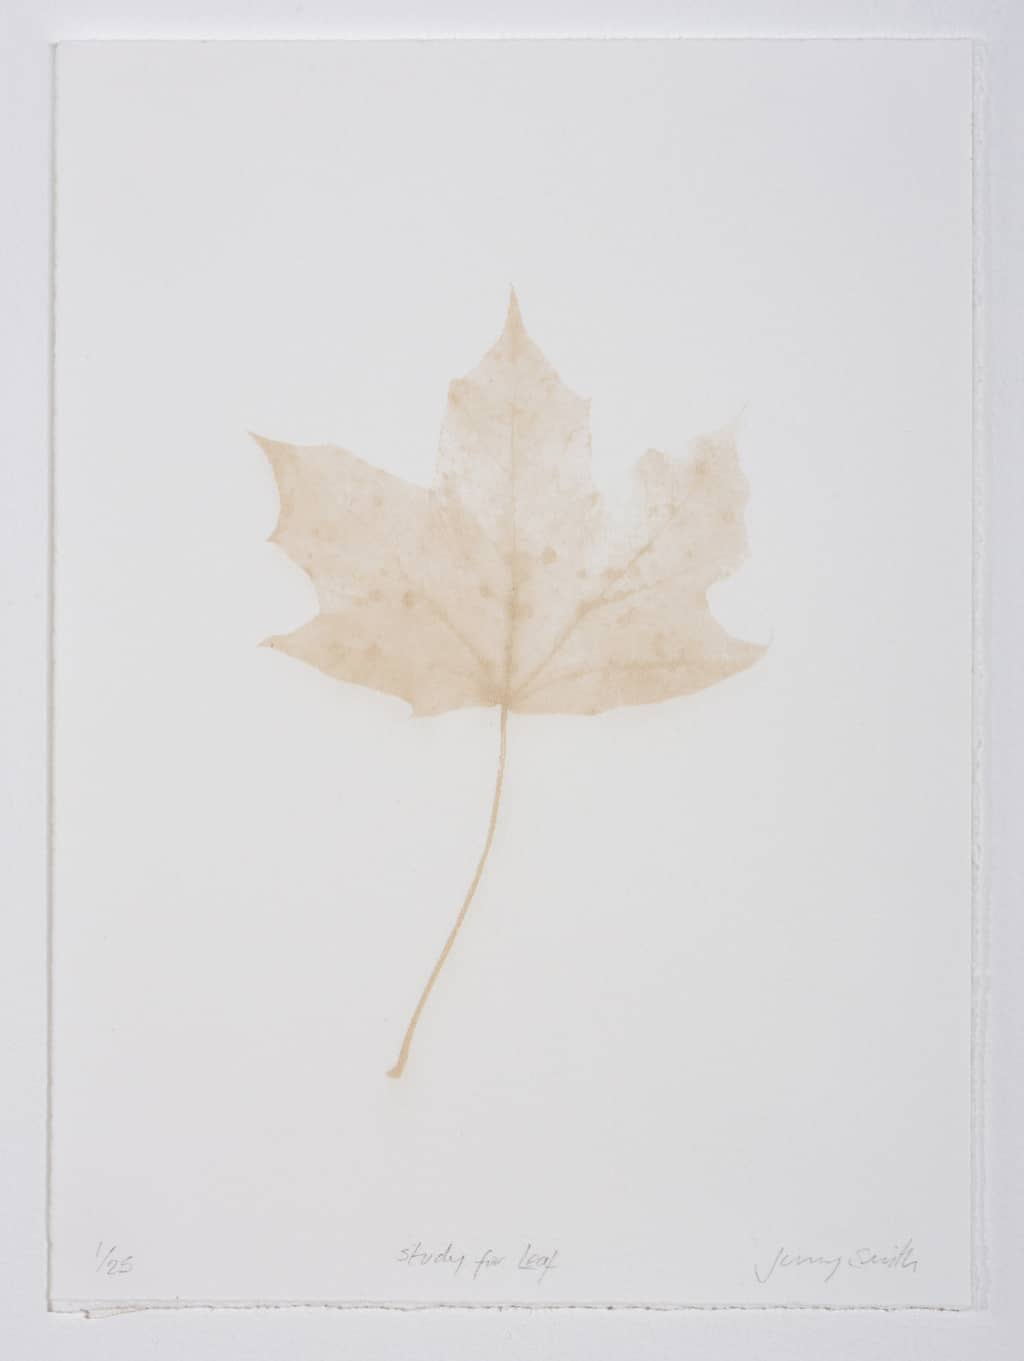 Study for Leaf (2018) Laser engraved print on somerset paper, 21 x 15 cm, Edition of 25